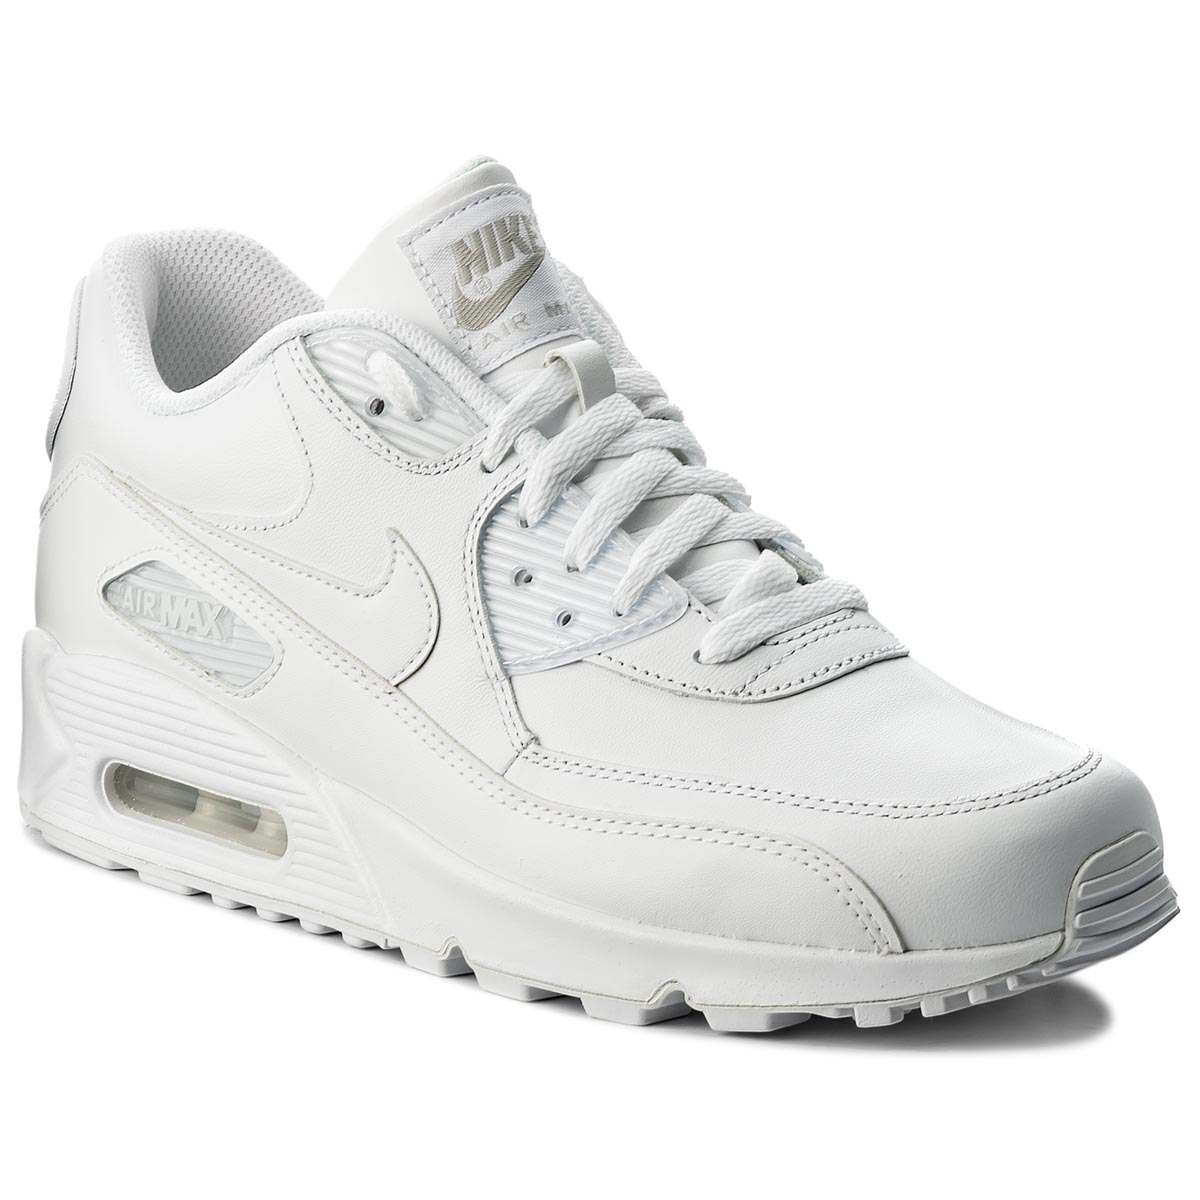 check out 95cce f3028 Shoes NIKE Air Max 90 Leather 302519 113 True White True White